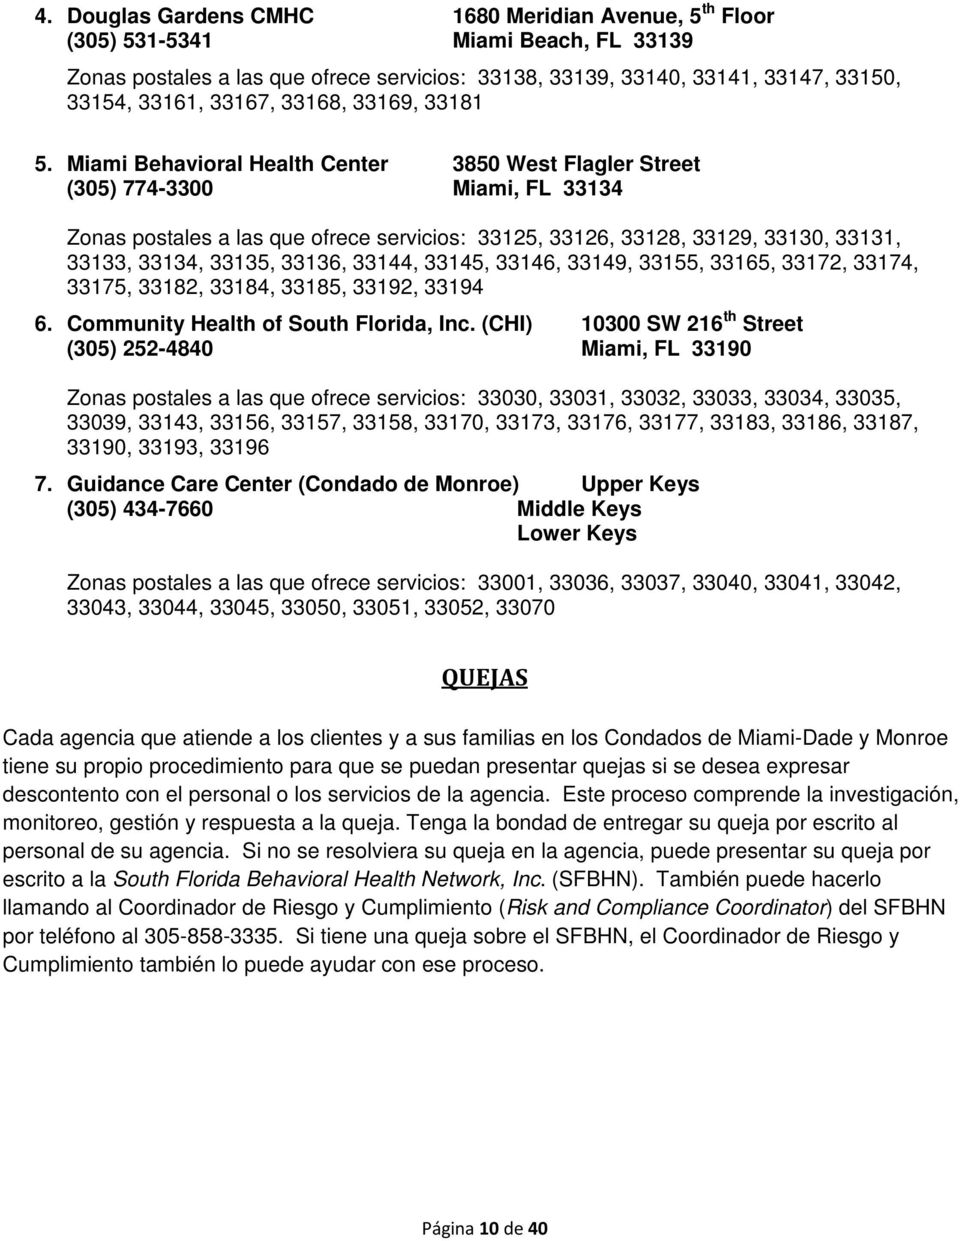 Miami Behavioral Health Center 3850 West Flagler Street (305) 774-3300 Miami, FL 33134 Zonas postales a las que ofrece servicios: 33125, 33126, 33128, 33129, 33130, 33131, 33133, 33134, 33135, 33136,